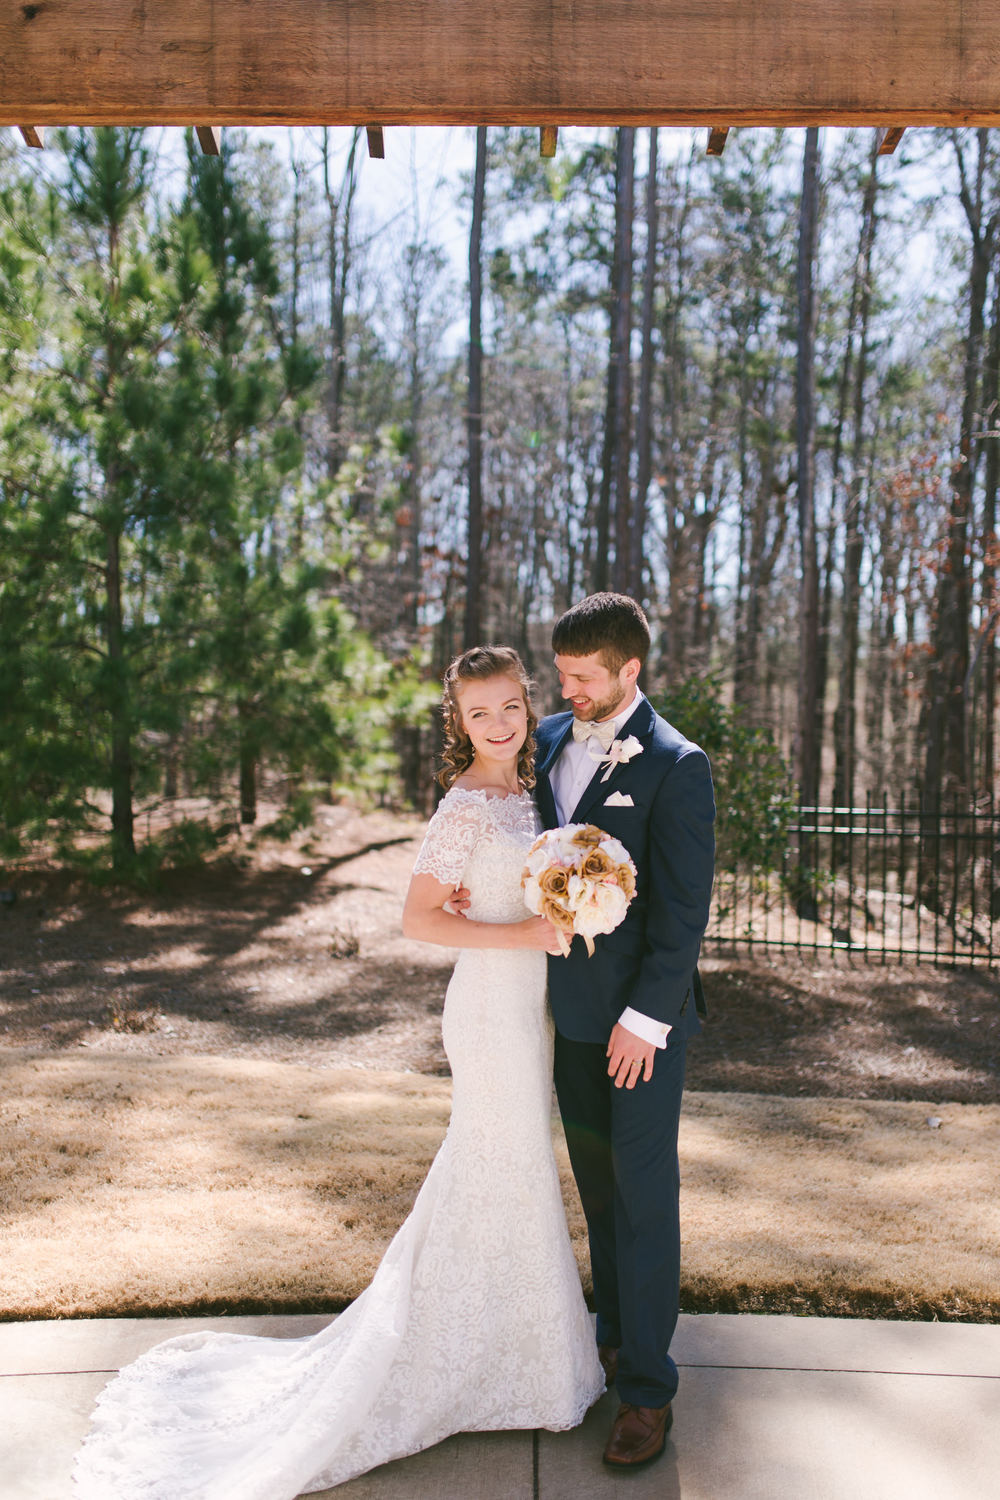 Classic-Spring-Ashton-Gardens-Atlanta-Wedding-Kate-Thomas-49.jpg